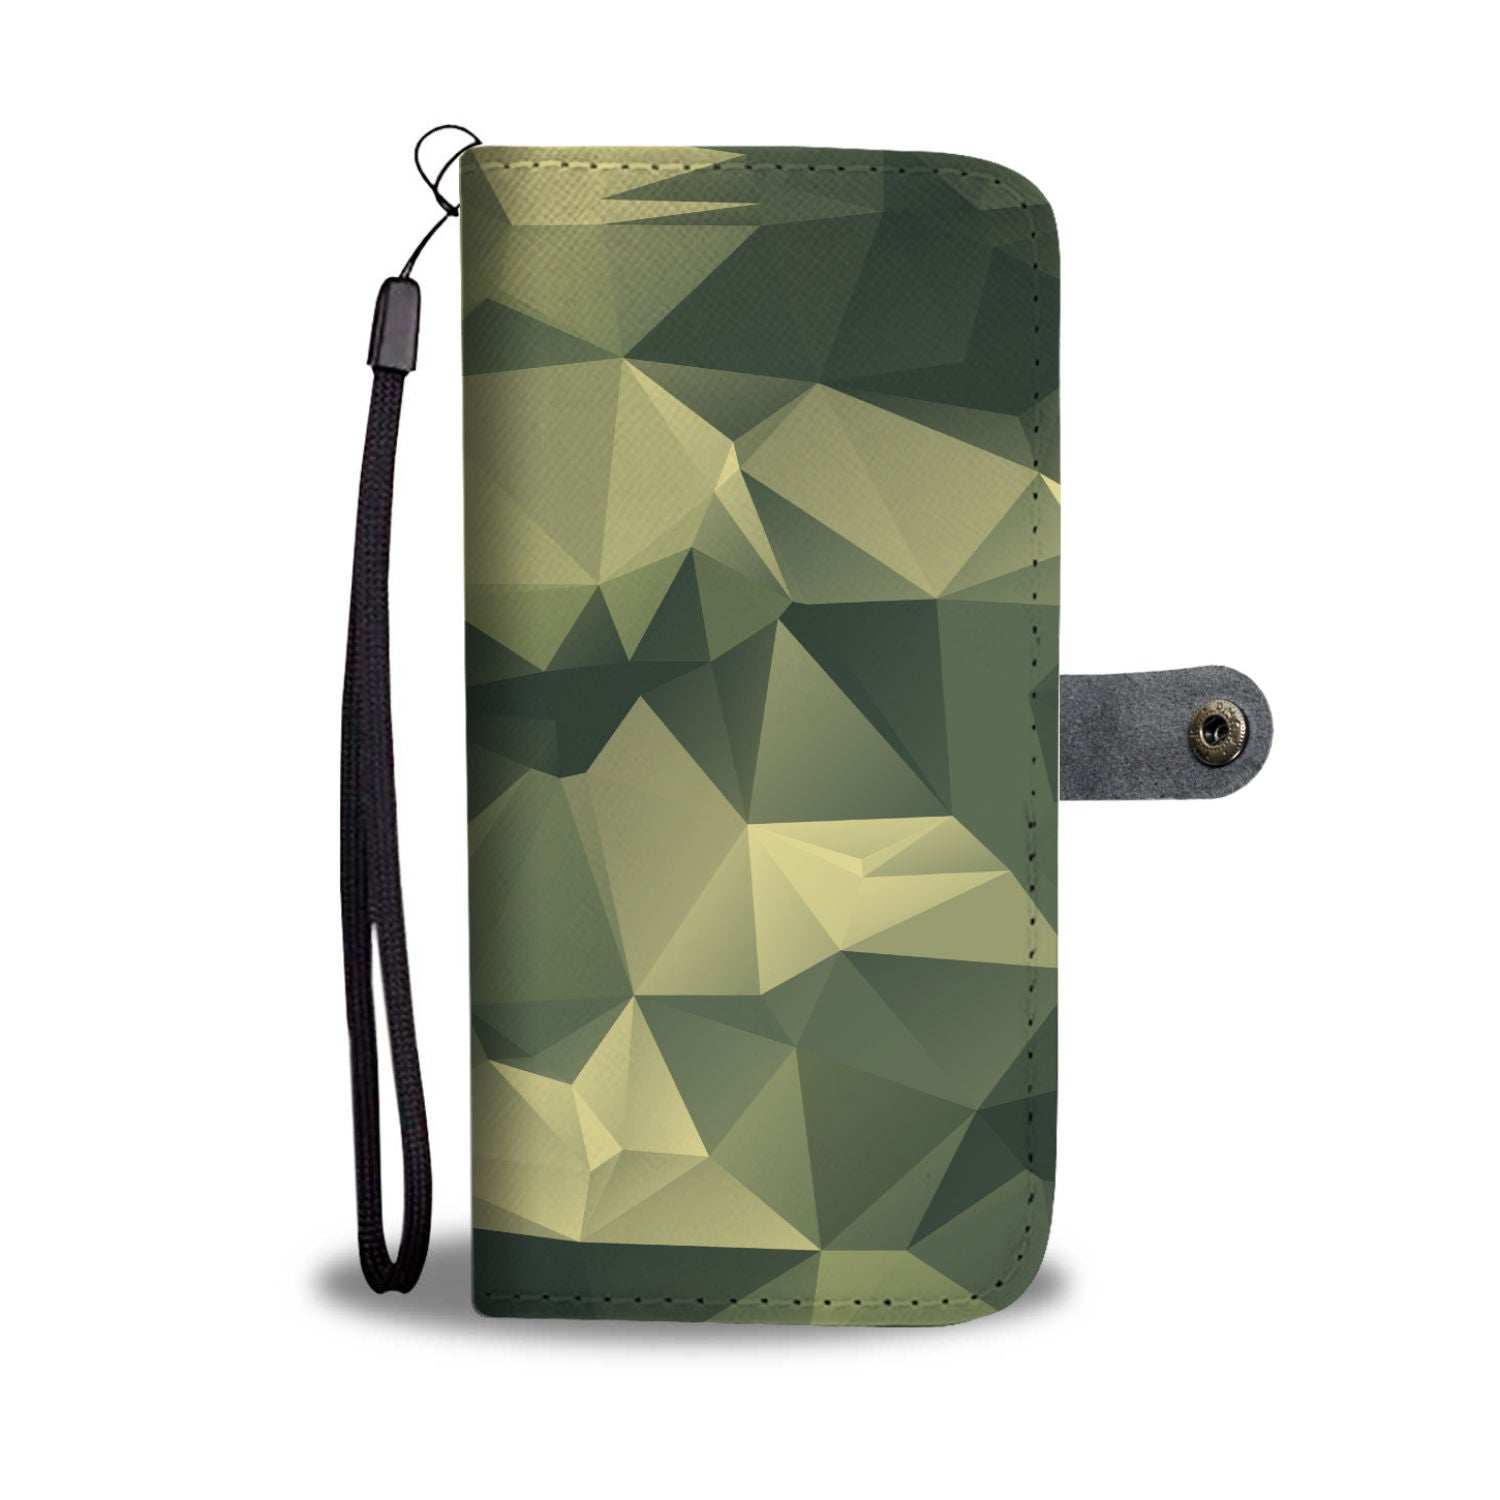 Polygonal Camouflage Army Pattern RFID Wallet Phone Case - Get Set Style Metro